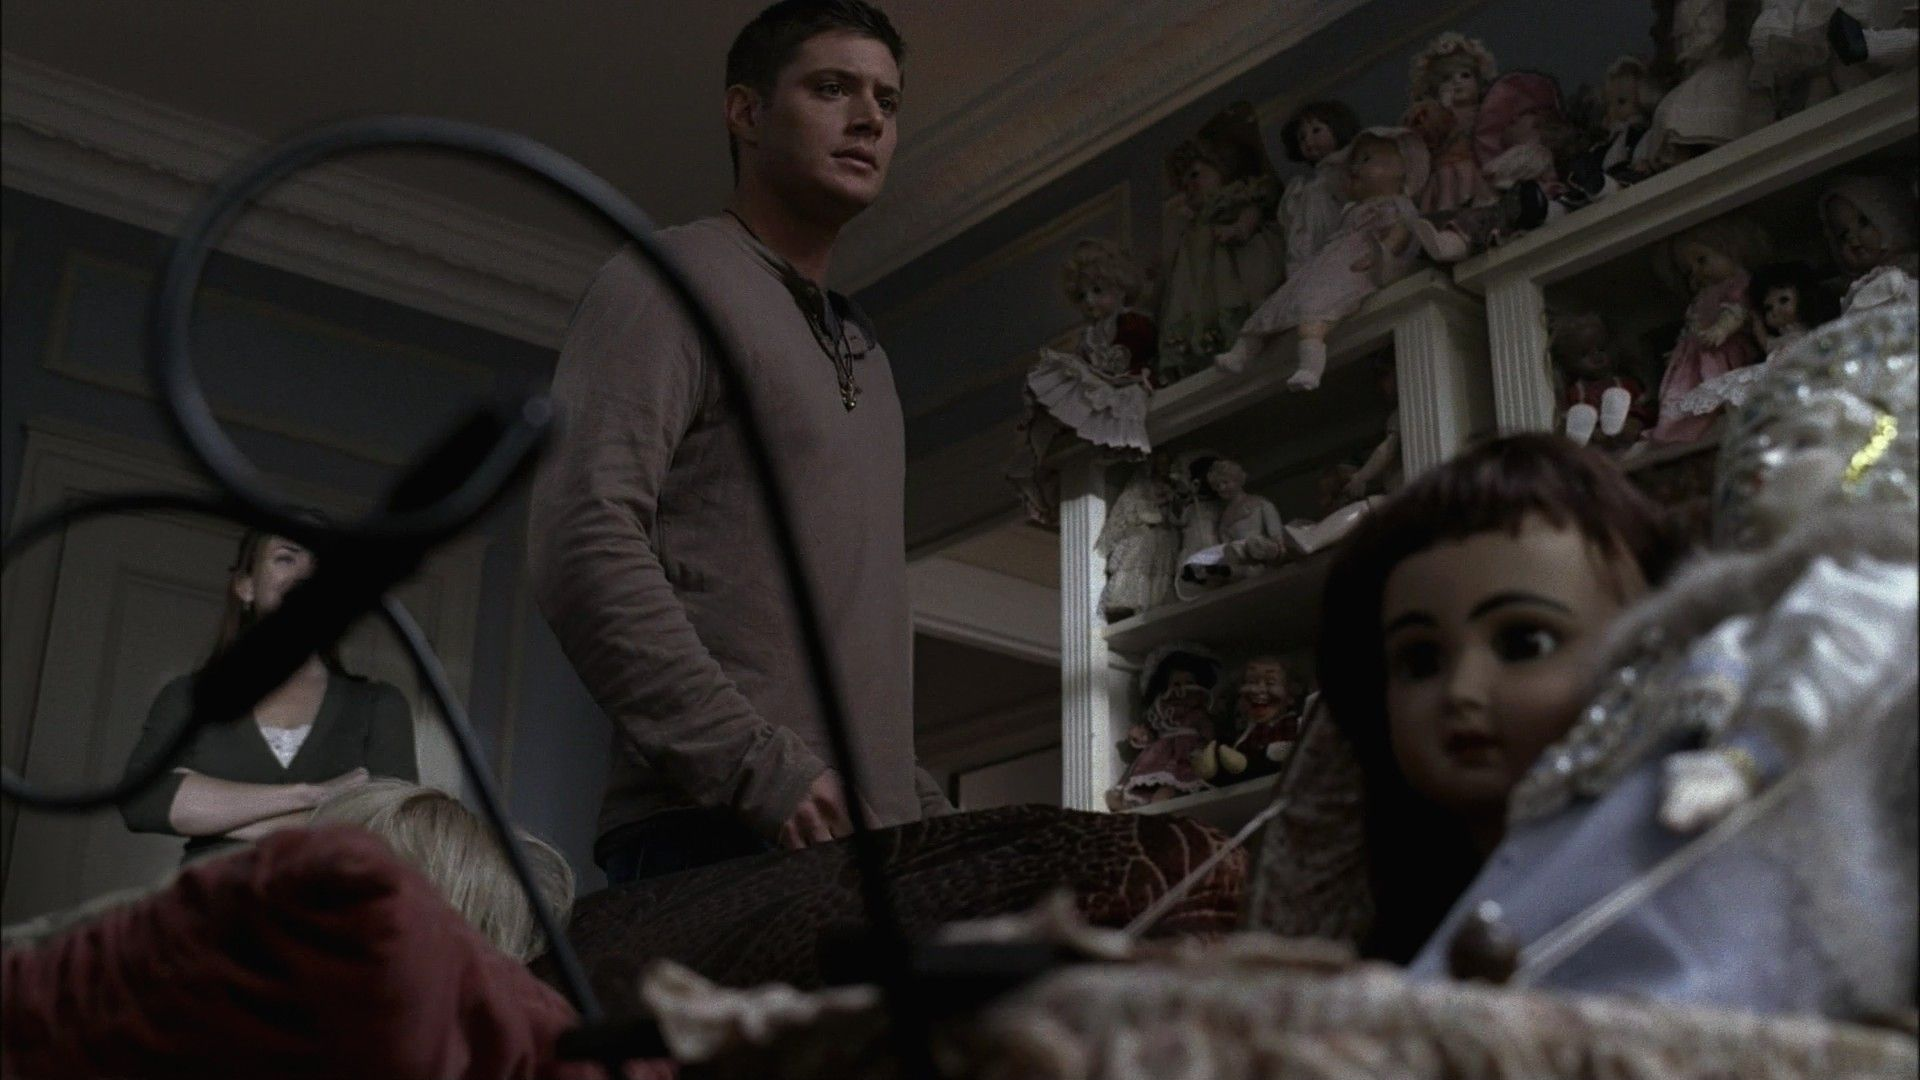 https://thewinchesterfamilybusiness.com/images/CaptionThis/2021/SPN_02x11.jpg